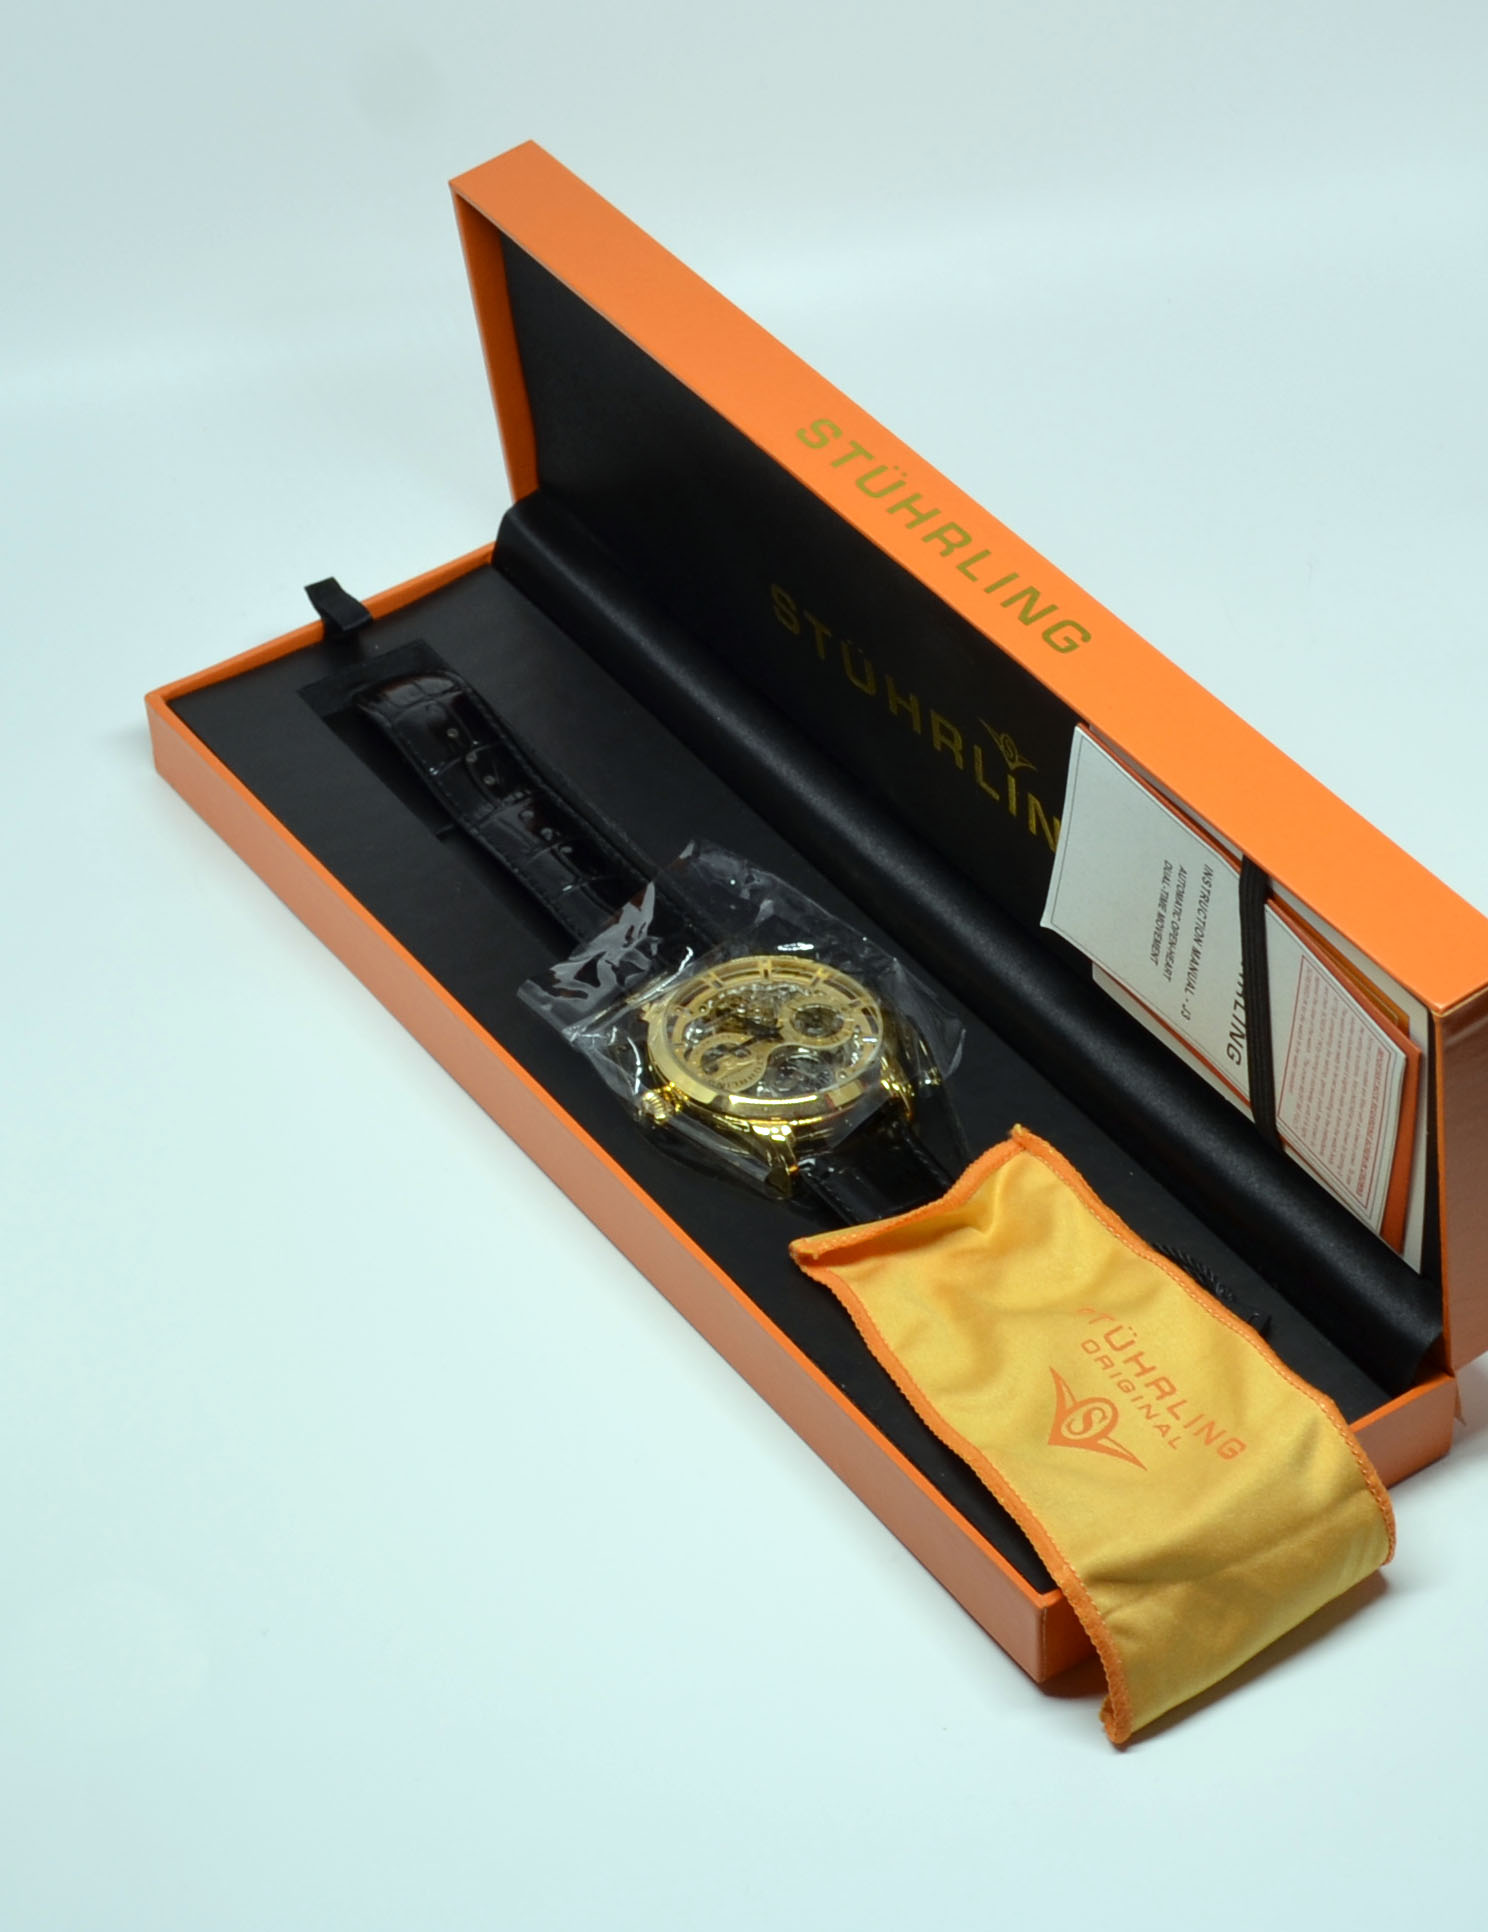 You get the watch, a cleaning cloth, instructions, and warranty and other paperwork.